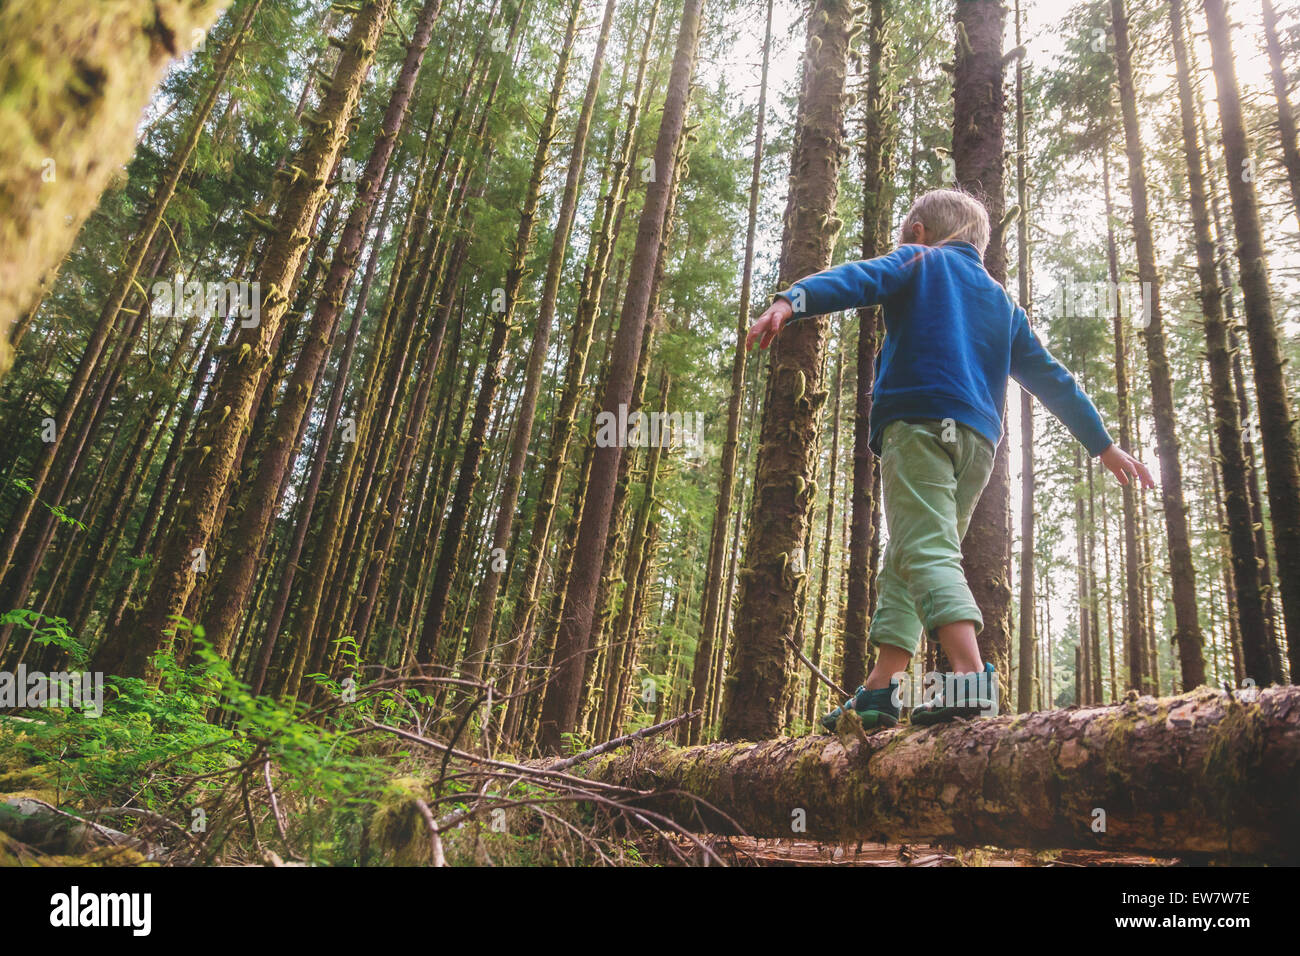 Low angle view of a boy walking across a tree trunk - Stock Image